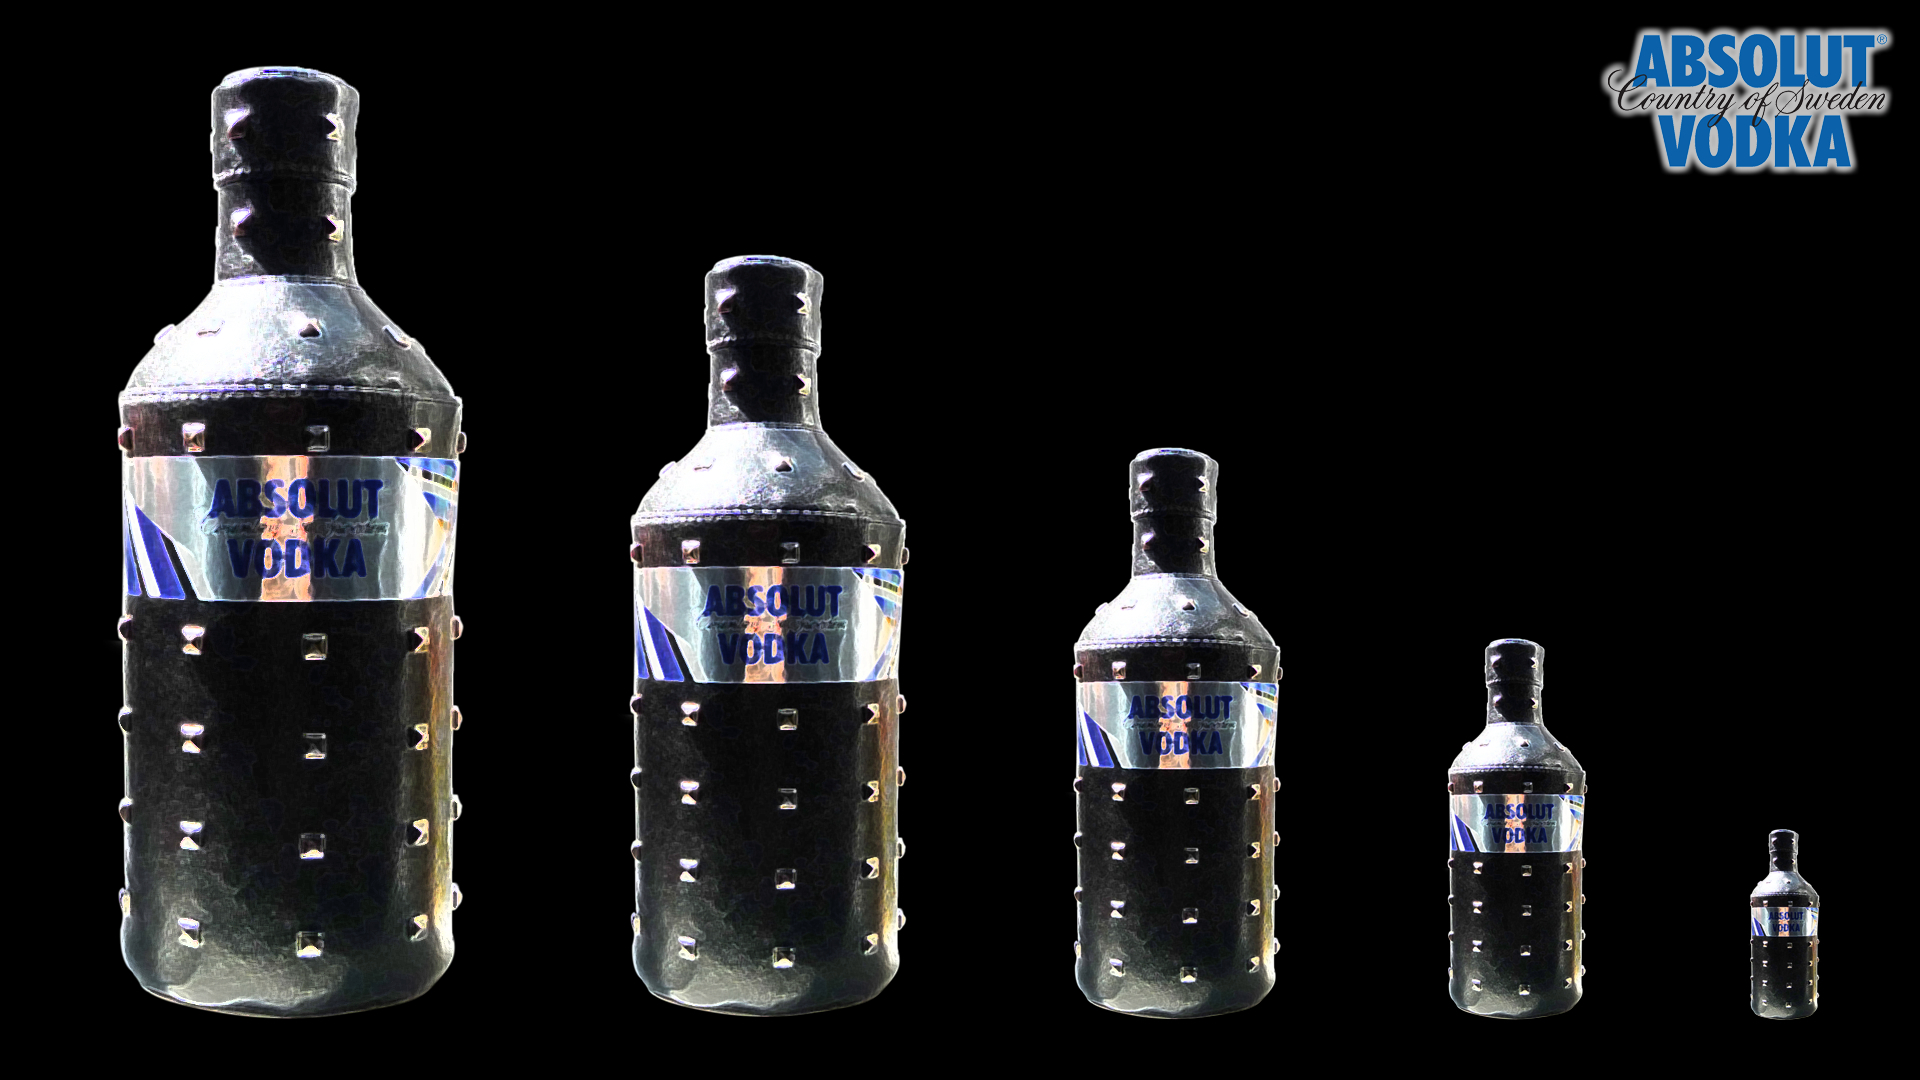 vodka absolut HD Wallpaper